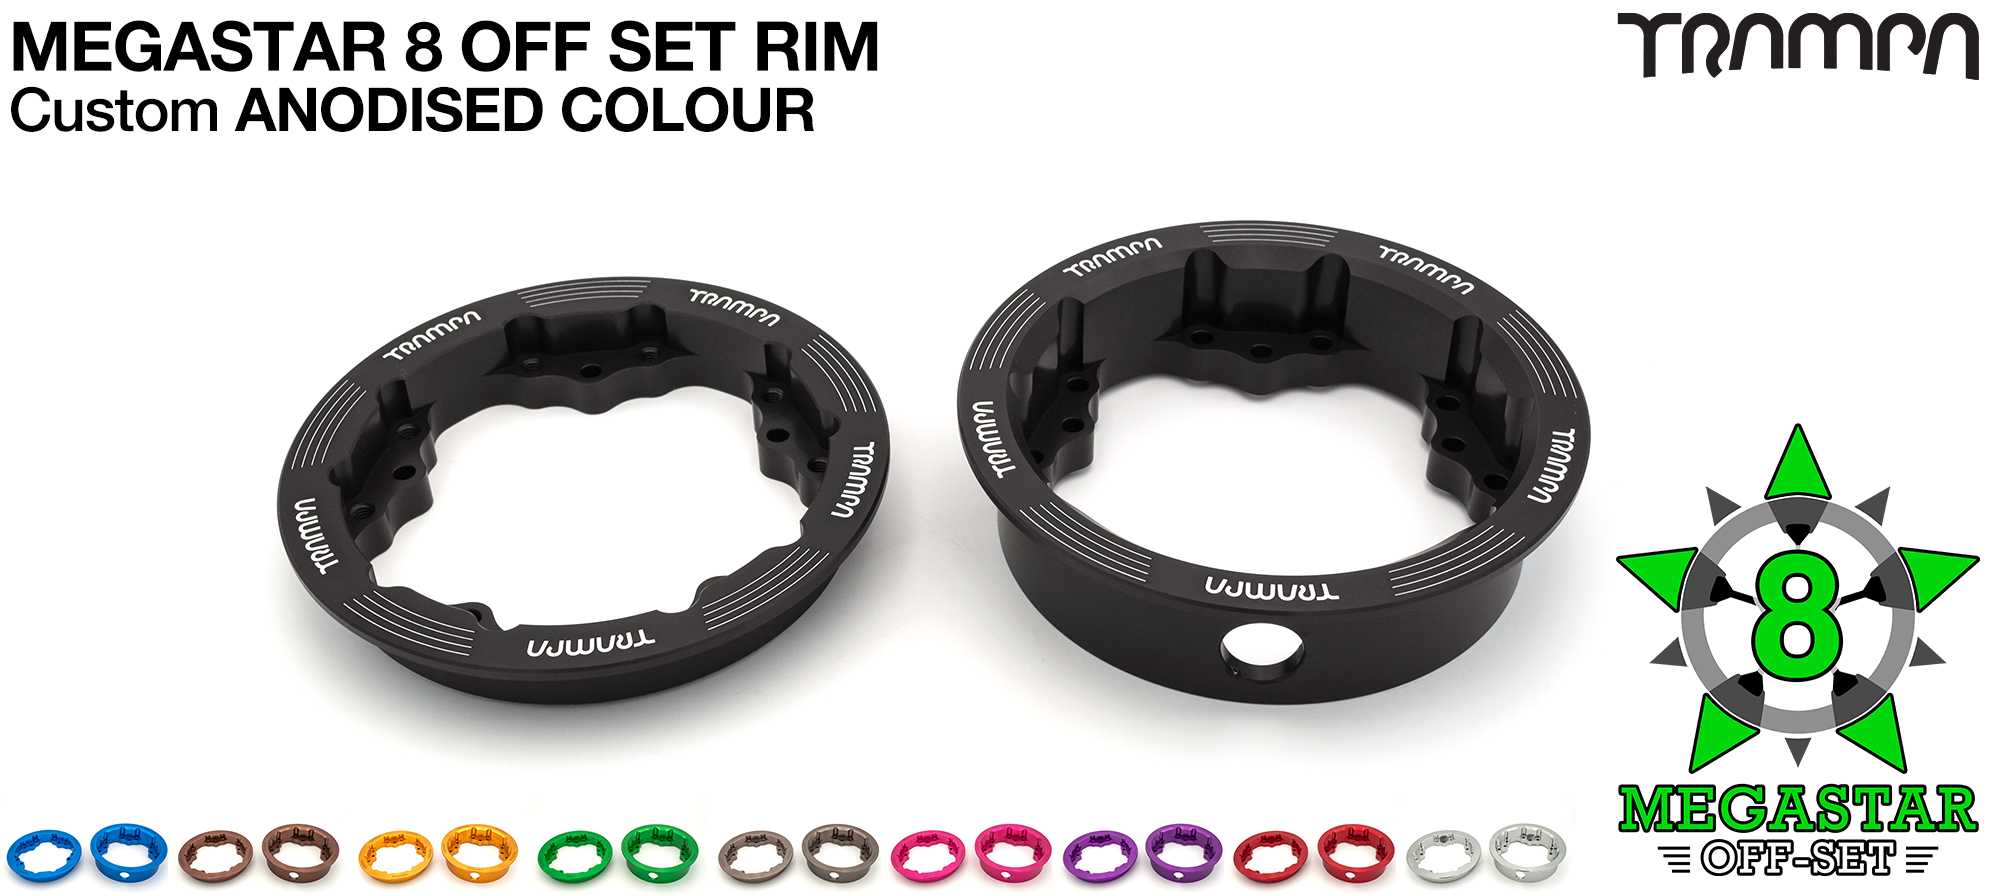 8 Inch OFF-SET MEGASTAR Rim comes in loads of different colour finishes